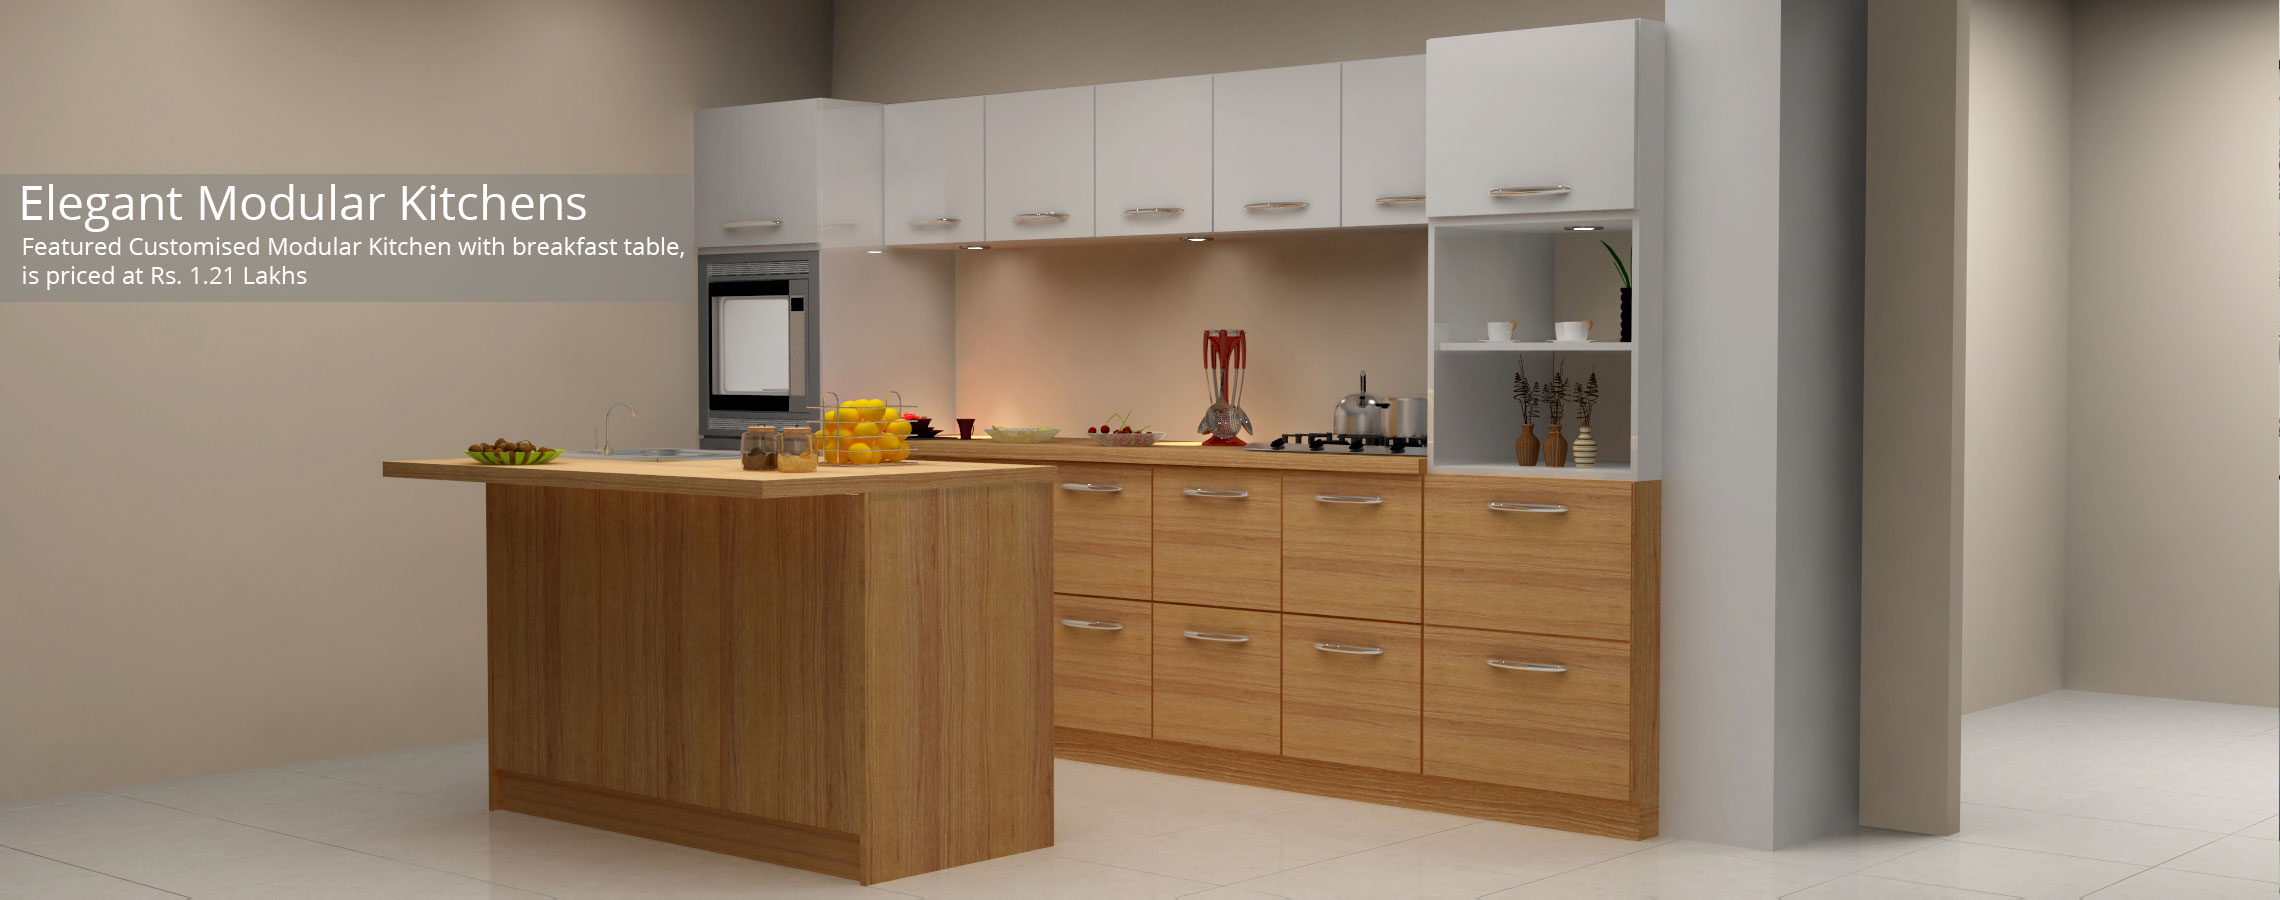 Elegant Modular Kitchen